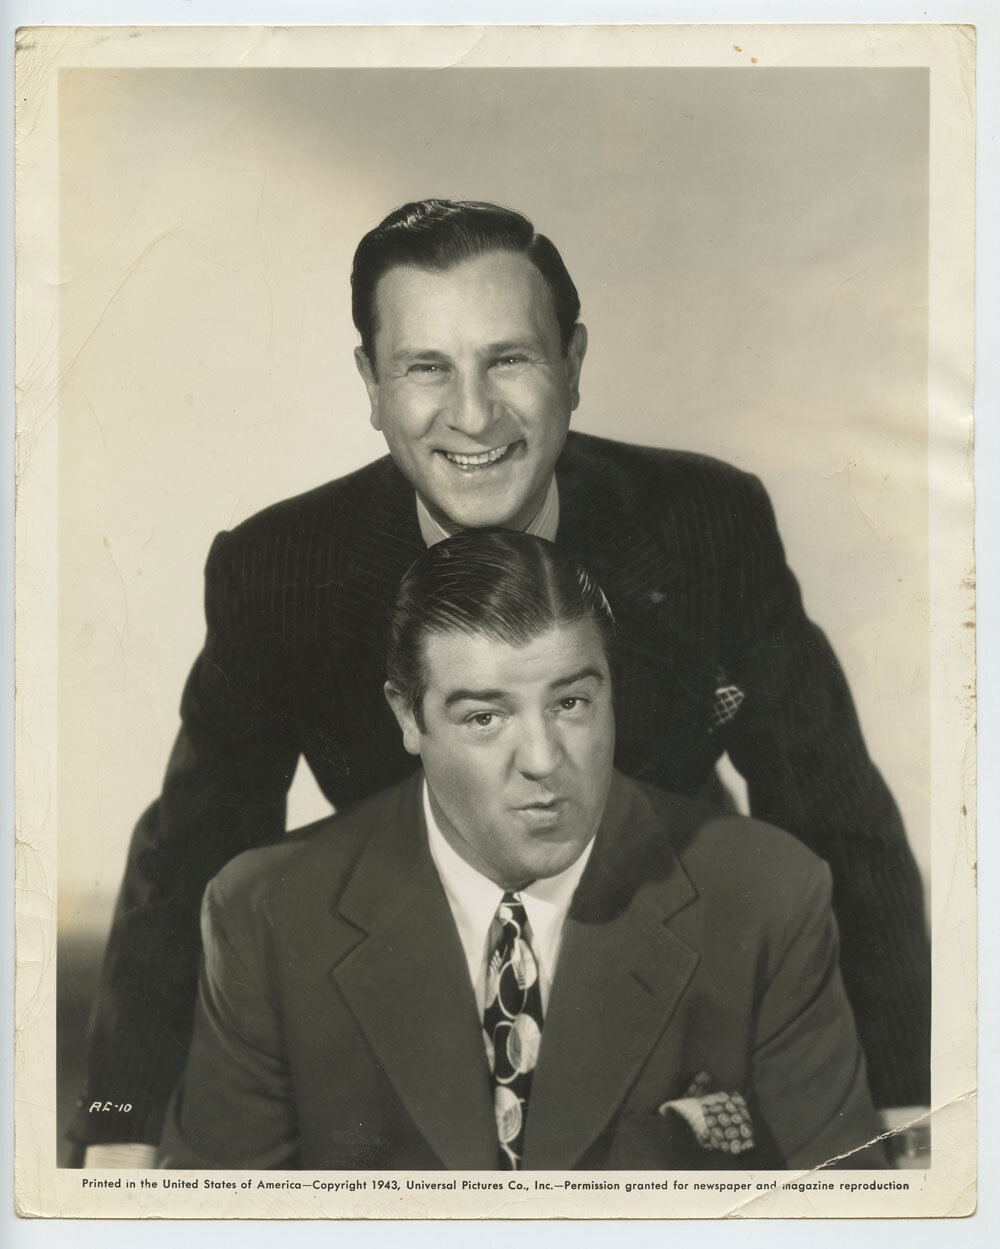 Abbot and Costello Photo 1943 Universal Pictures Publicity Portrait